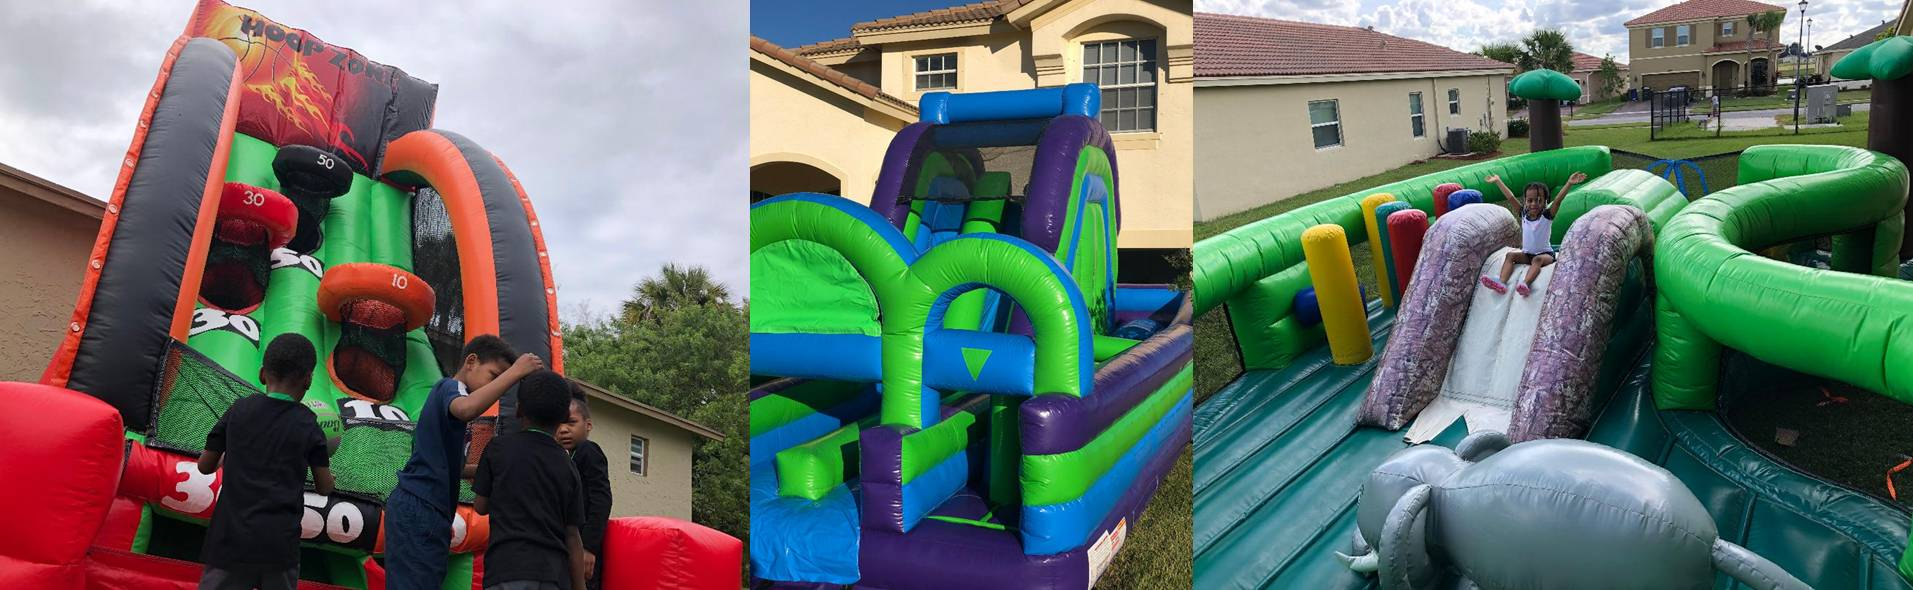 Inflatable jumper bounce house rental in Florida's Treasure Coast area